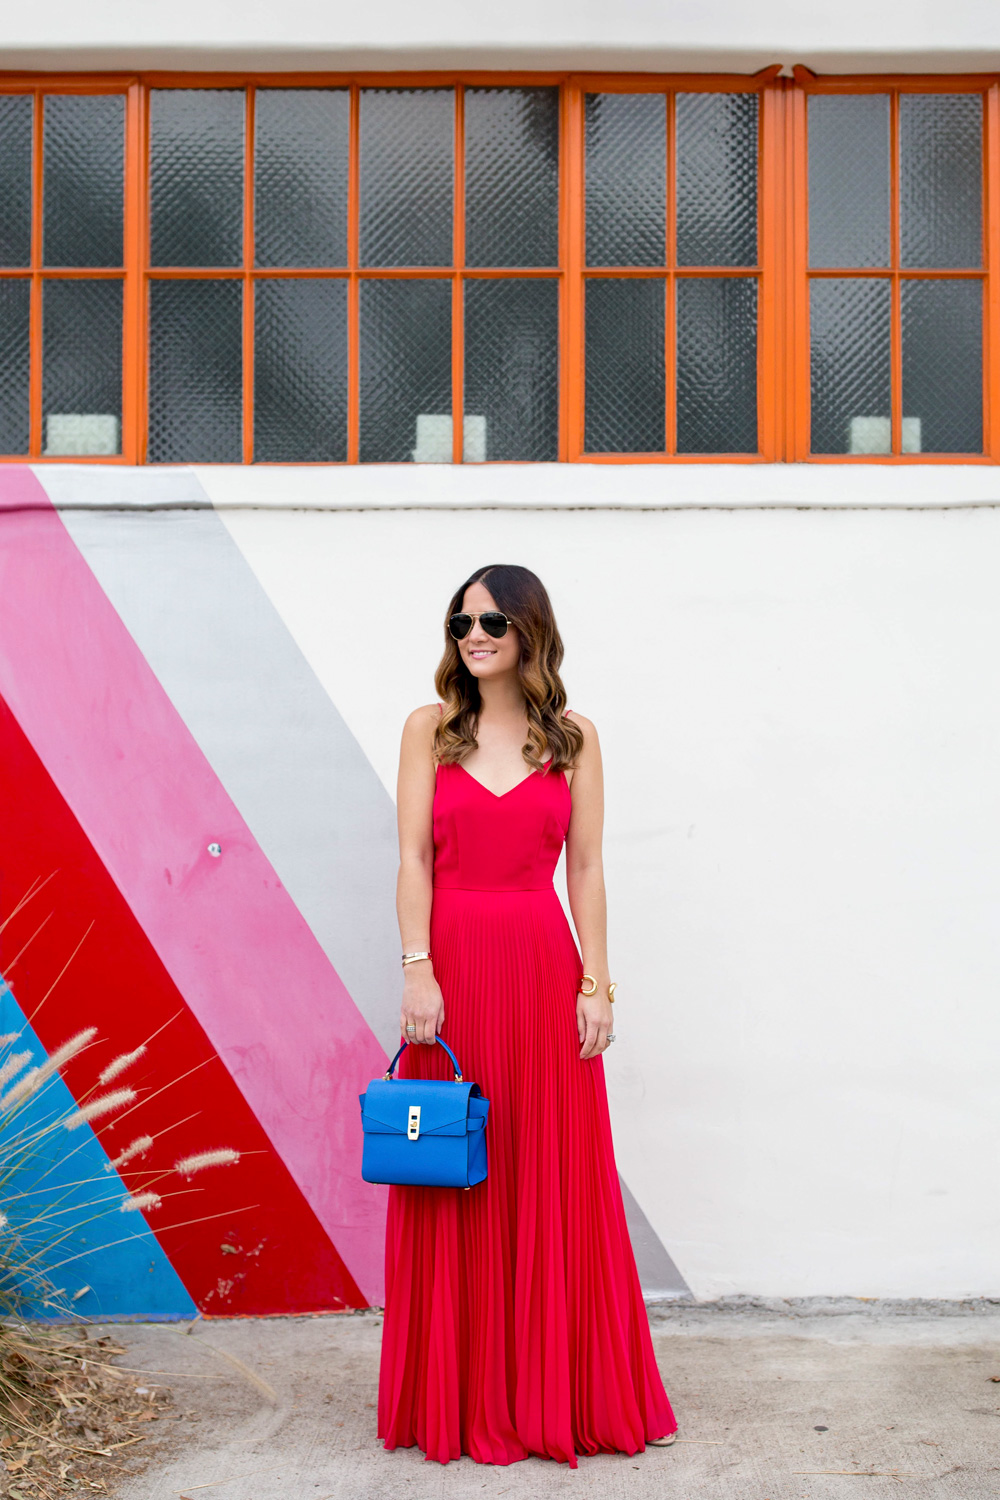 Jennifer Lake Style Charade in an ASOS pink pleated maxi dress, blue Henri Bendel Mini Uptown satchel, at a Free City striped wall in Los Angeles